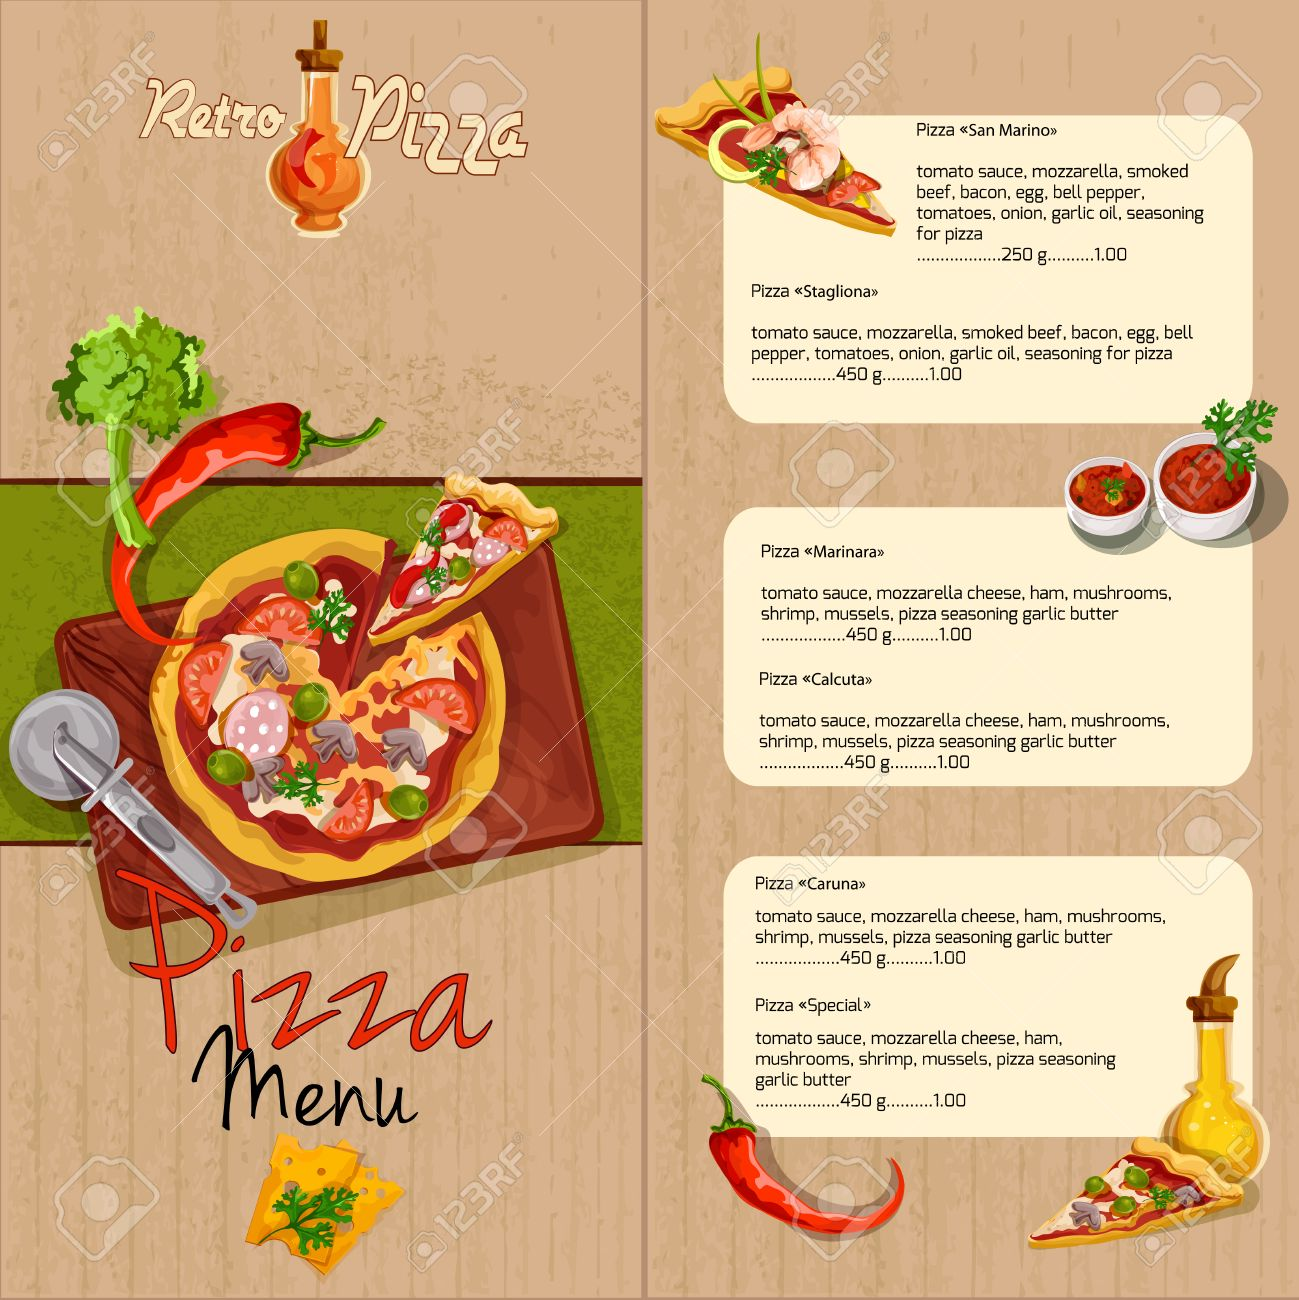 pizza menu template Pizzeria Pizza Restaurant Menu Template With Ingredients Oil ...